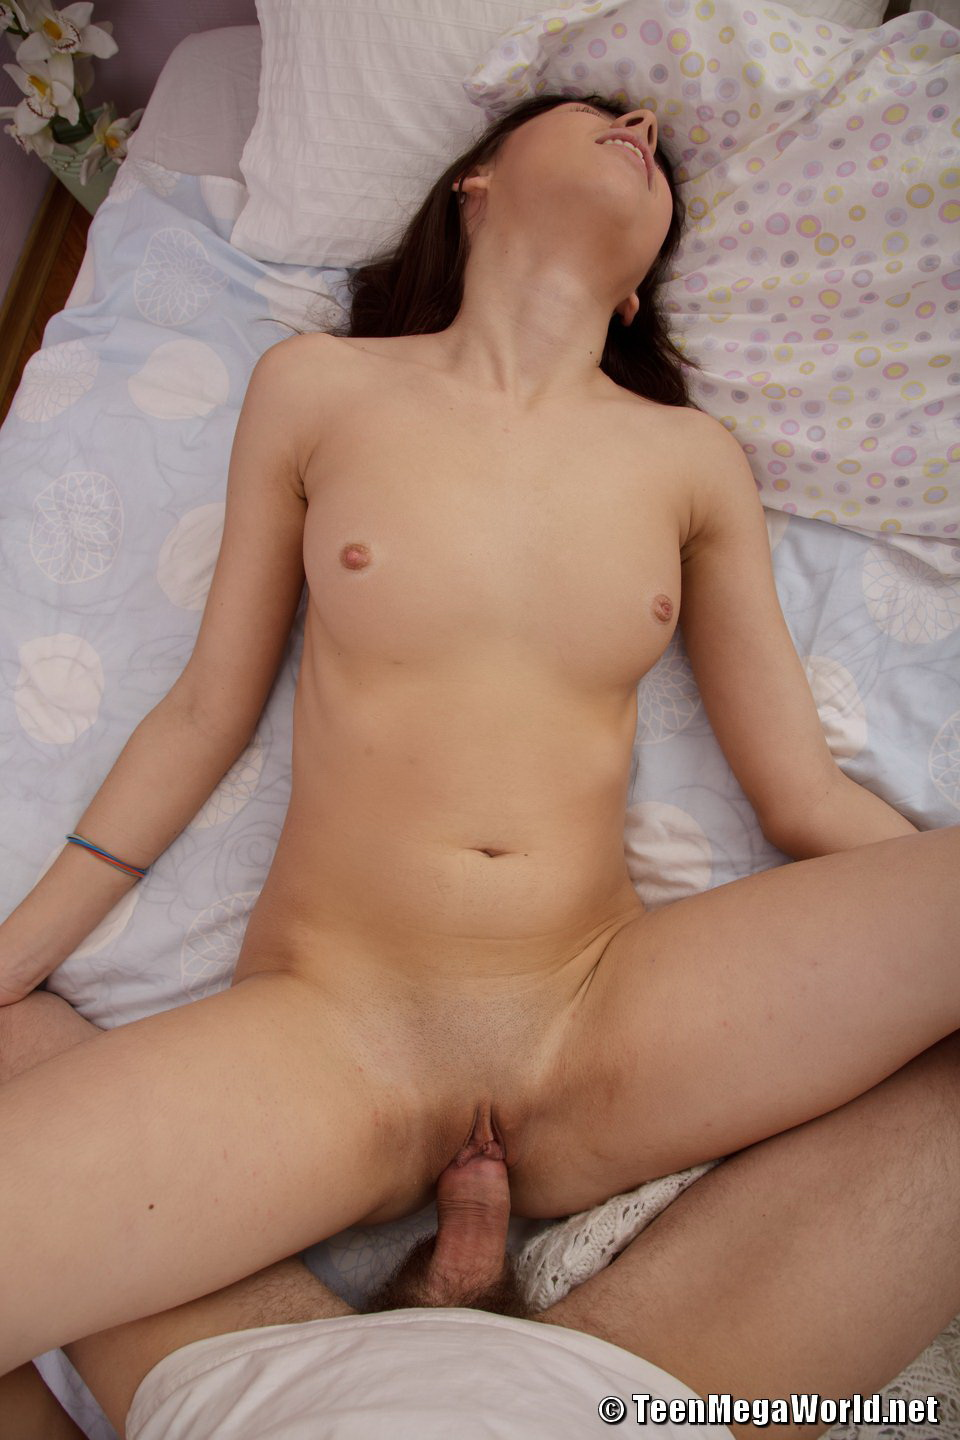 Mature nude women in lust